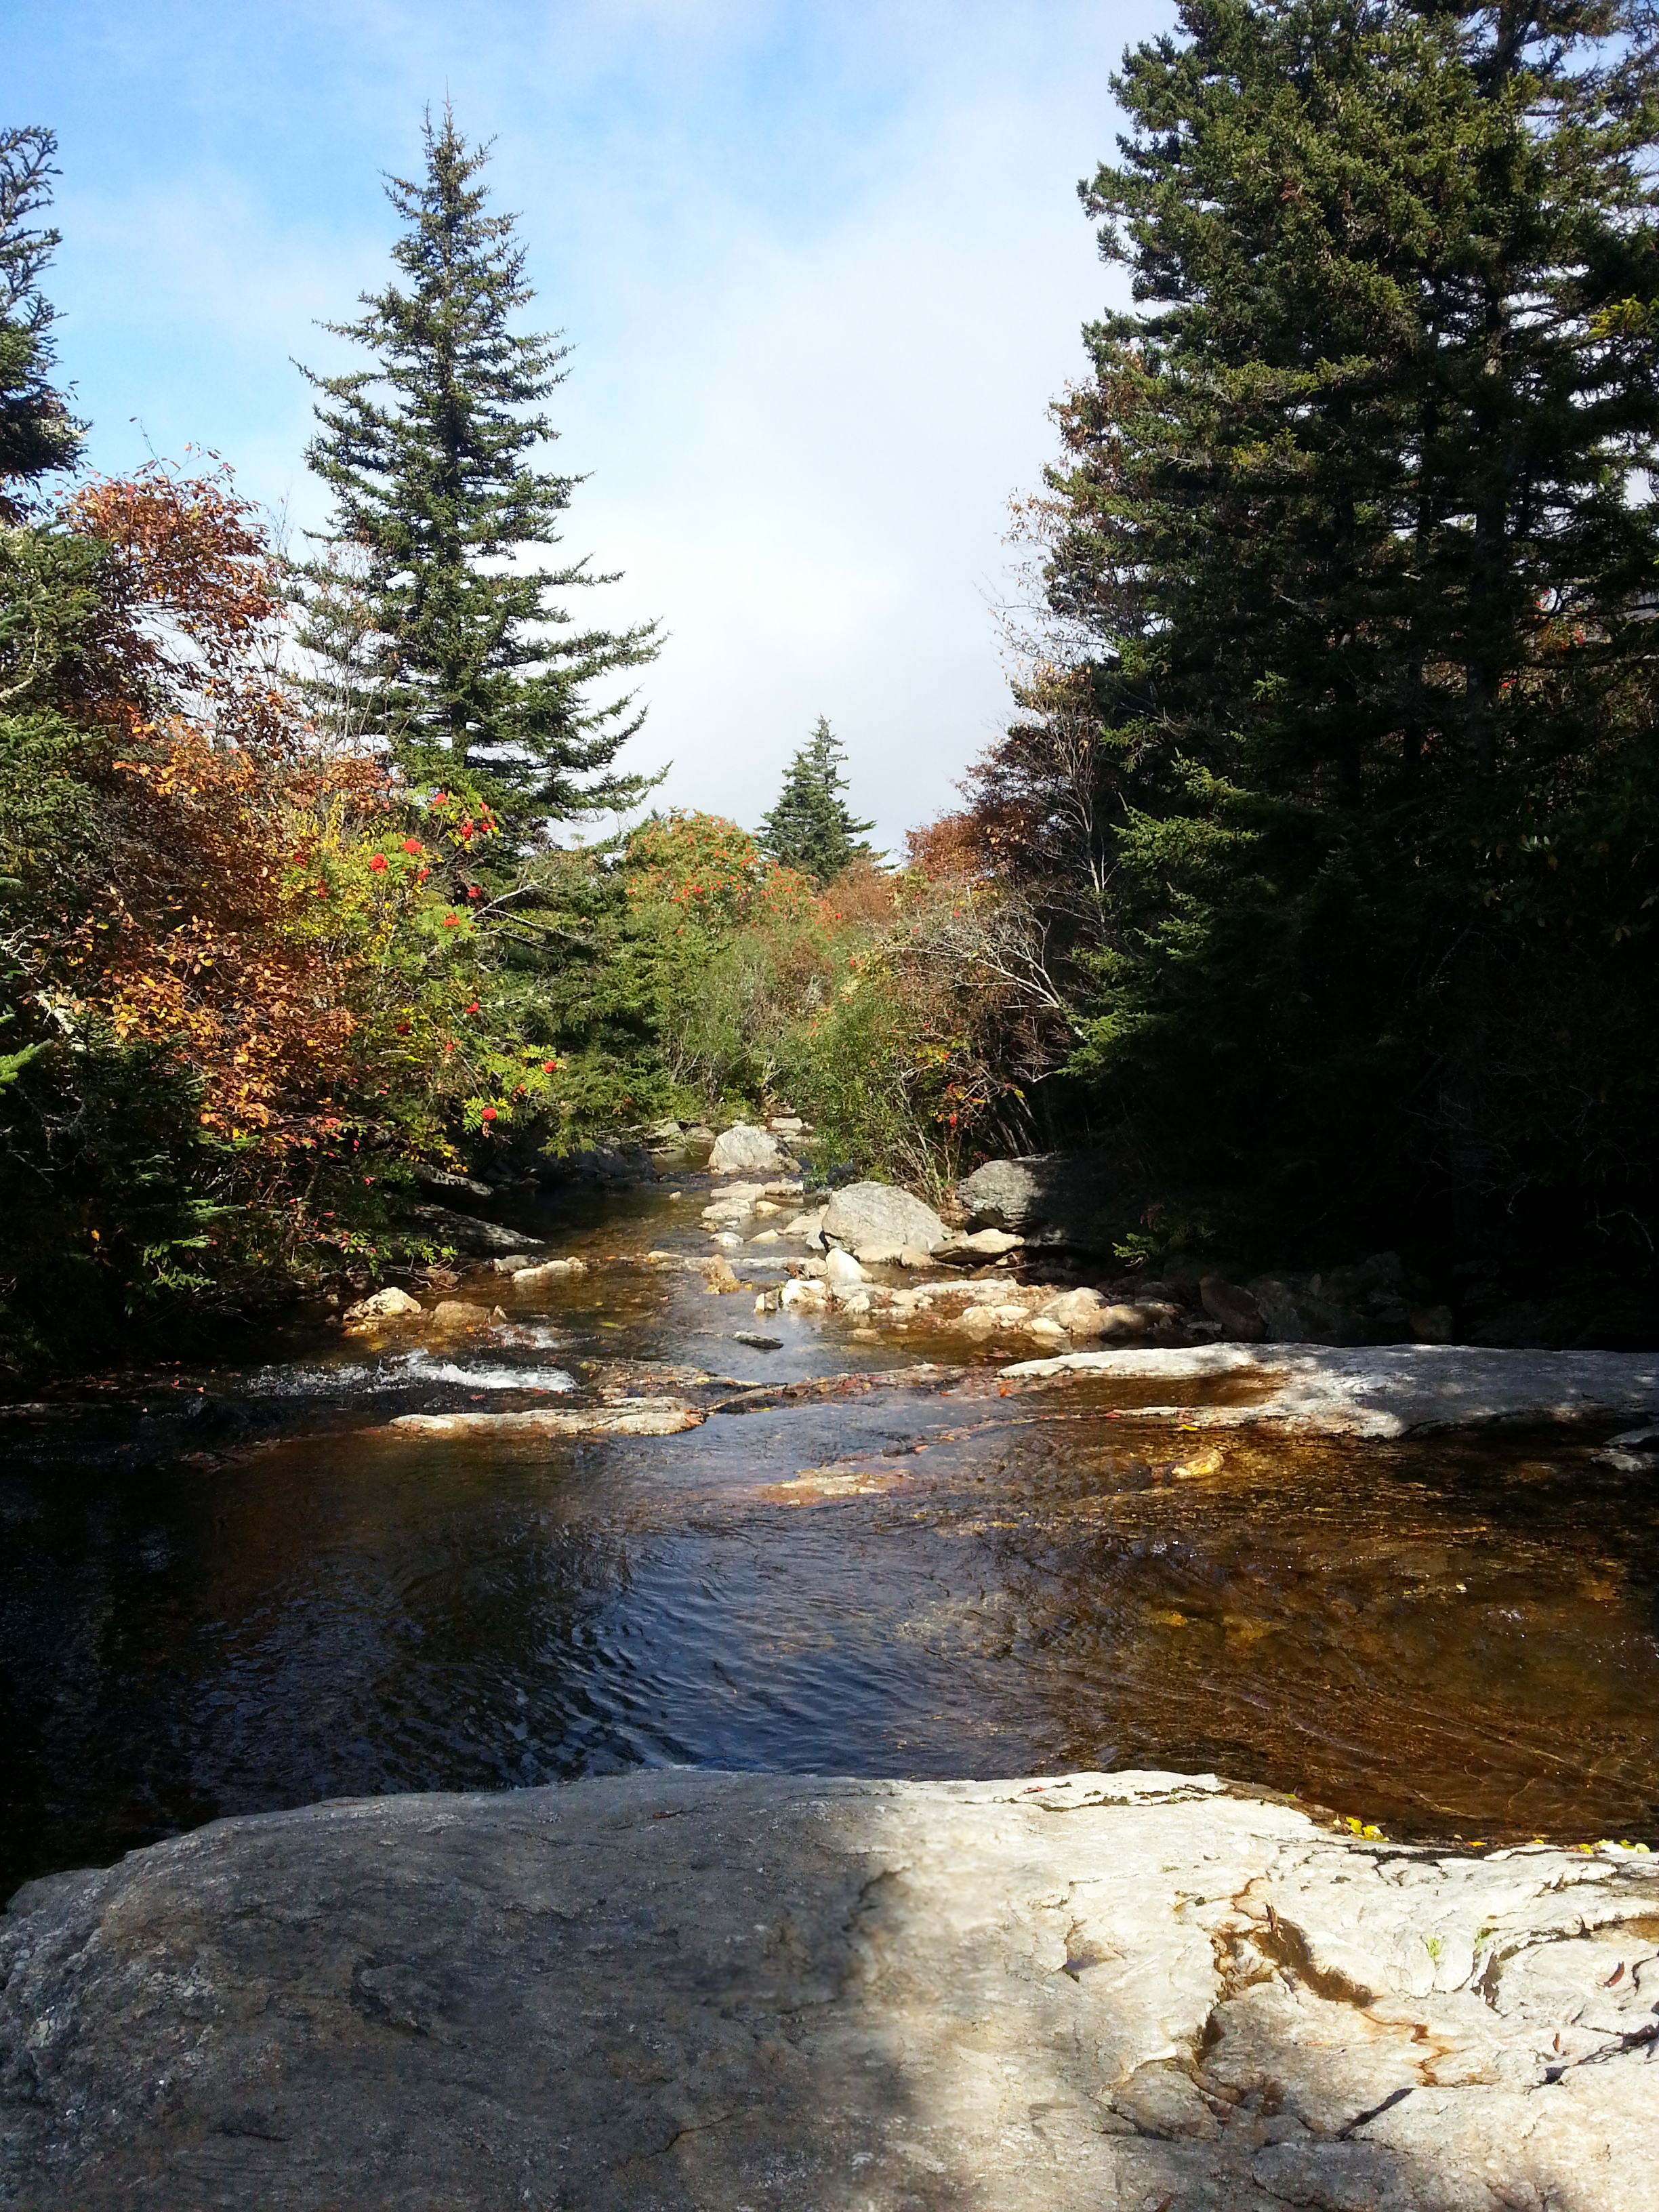 Another view while crossing the creek. McCrae and Ryder were not thrilled that I dawdled on the slick rocks.